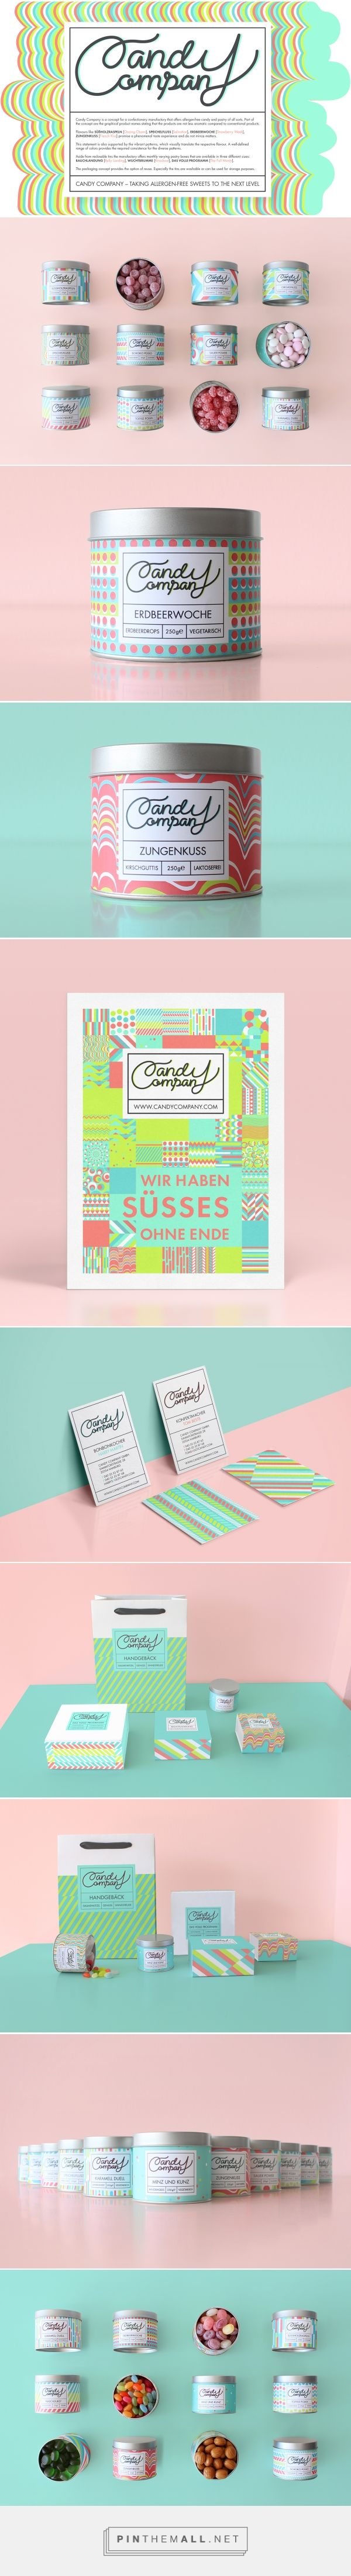 Candy Company Branding and Packaging by Sarah Dornieden